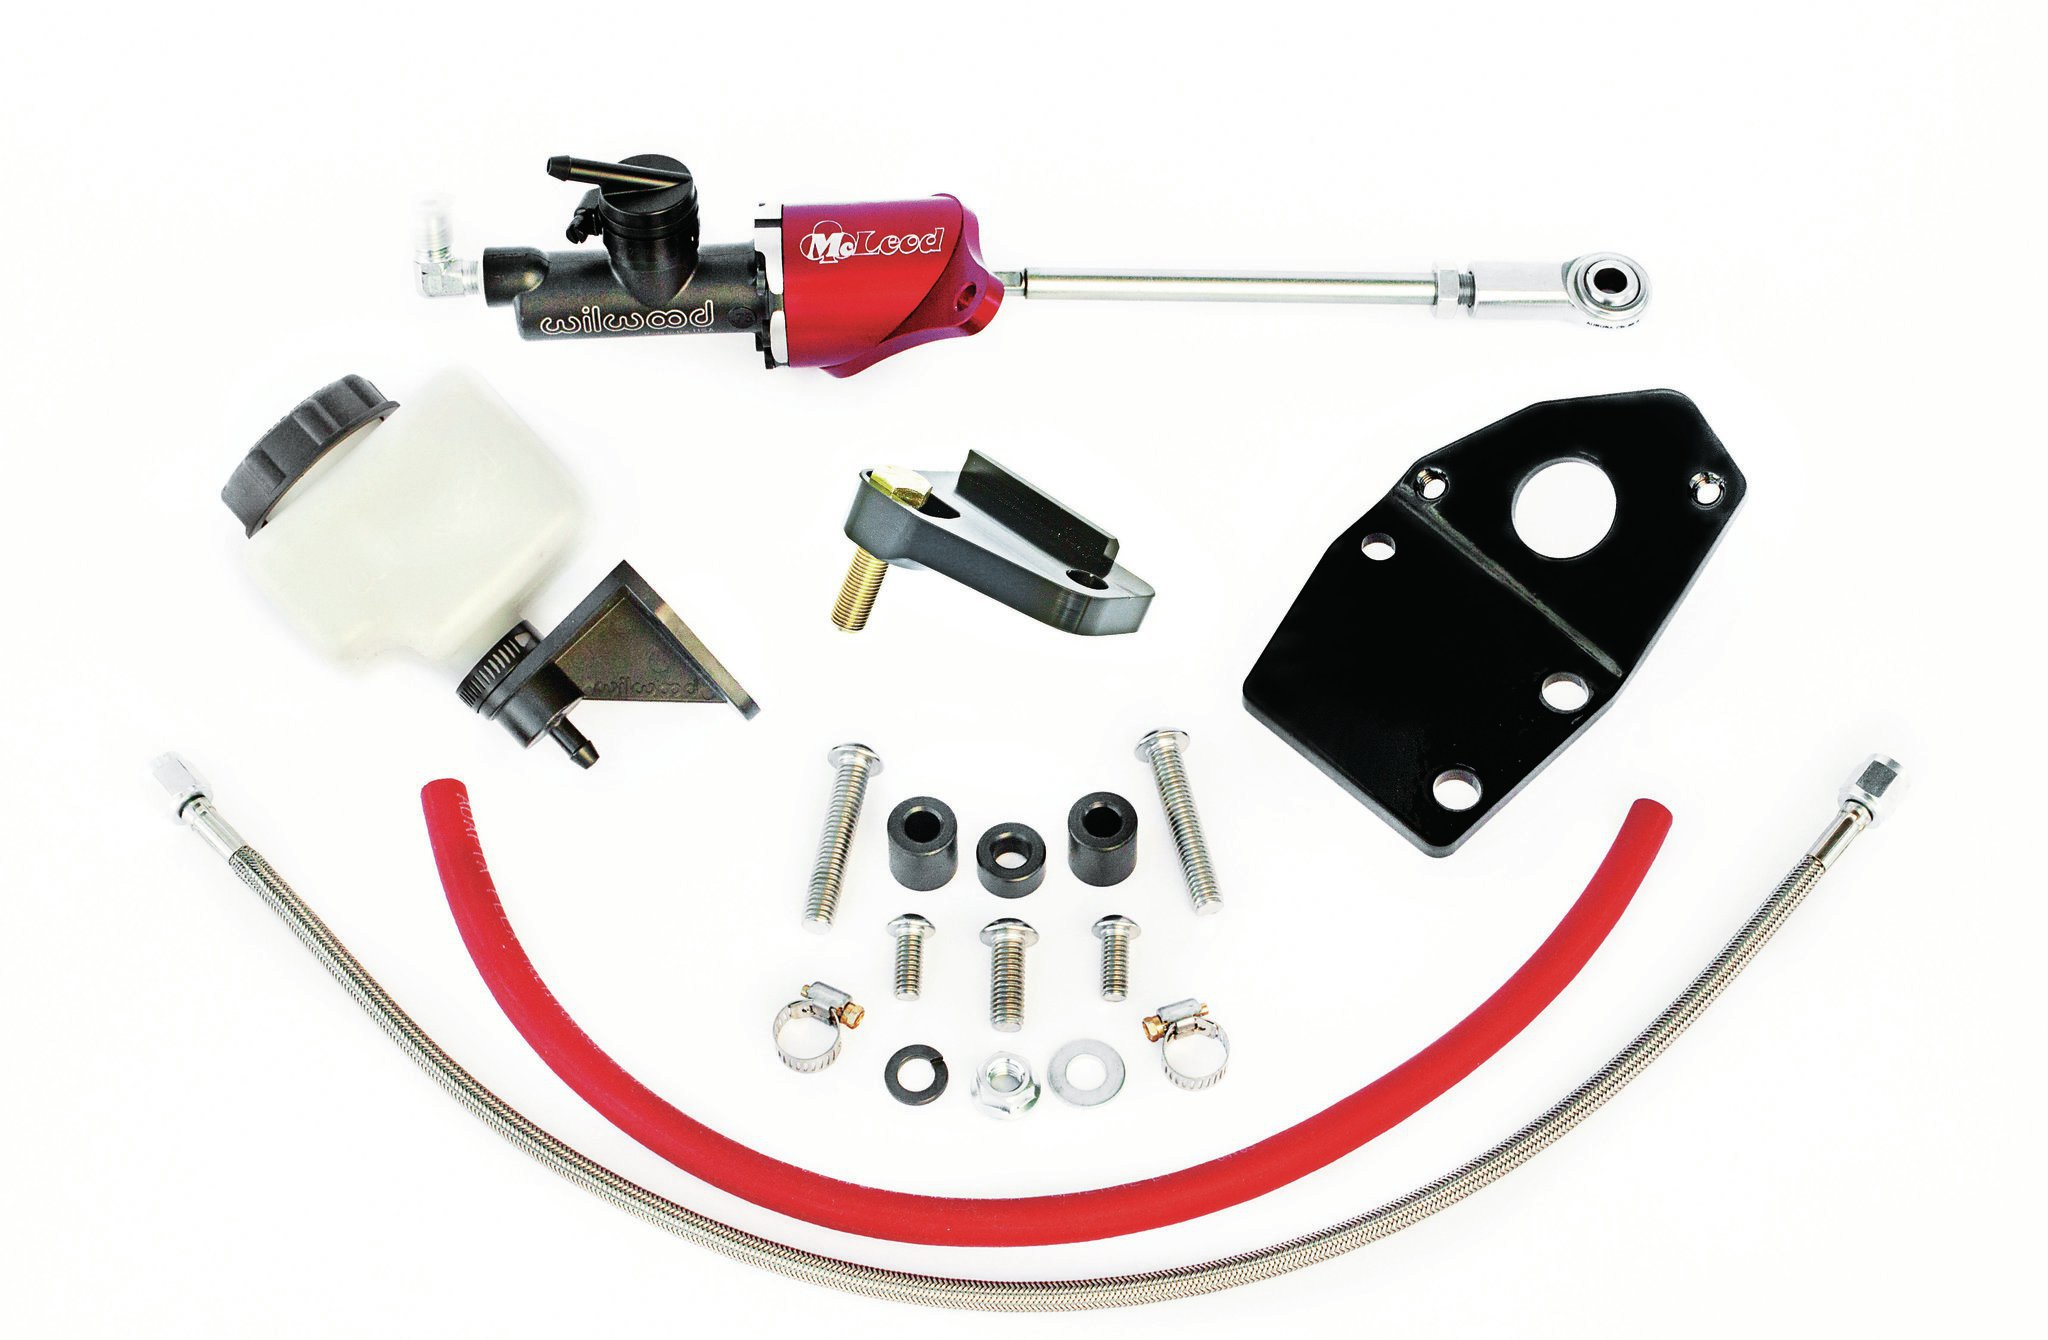 The hydraulic conversion kit includes all necessary parts except a hydraulic throwout bearing. The proper bearing will vary according to the combo's bellhousing, clutch design, and trans.